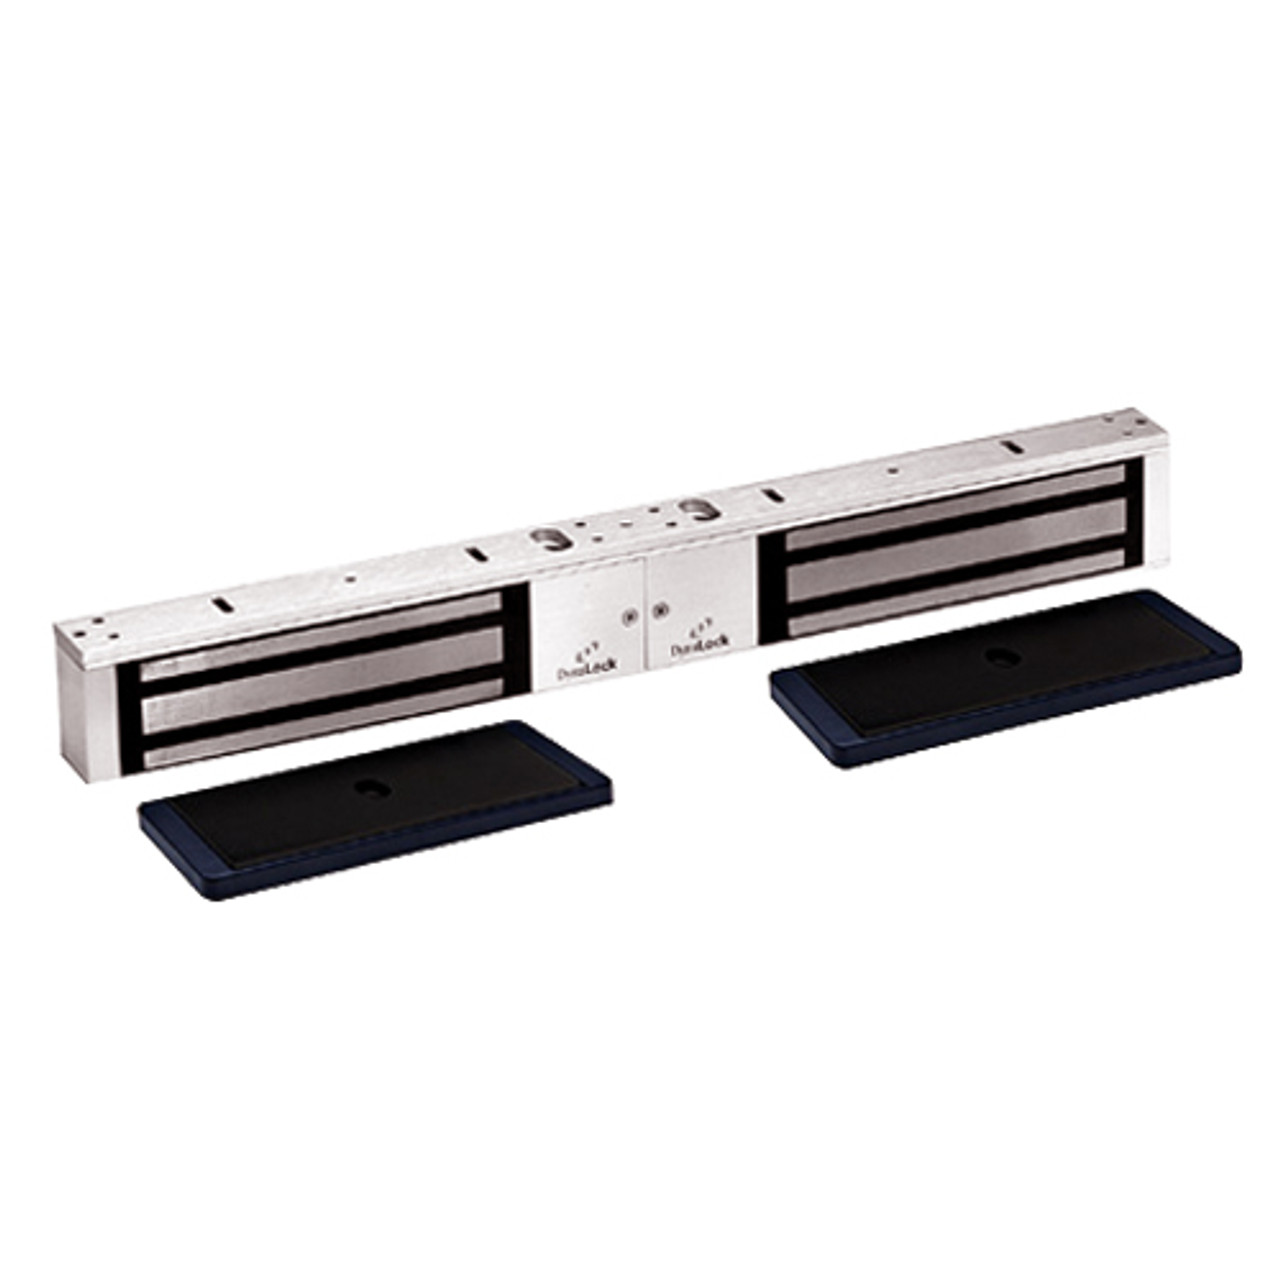 2022-US28-HSM2 DynaLock 2000 Series 1200 LB Holding Force Double Electromagnetic Lock with High Security Monitor in Satin Aluminum